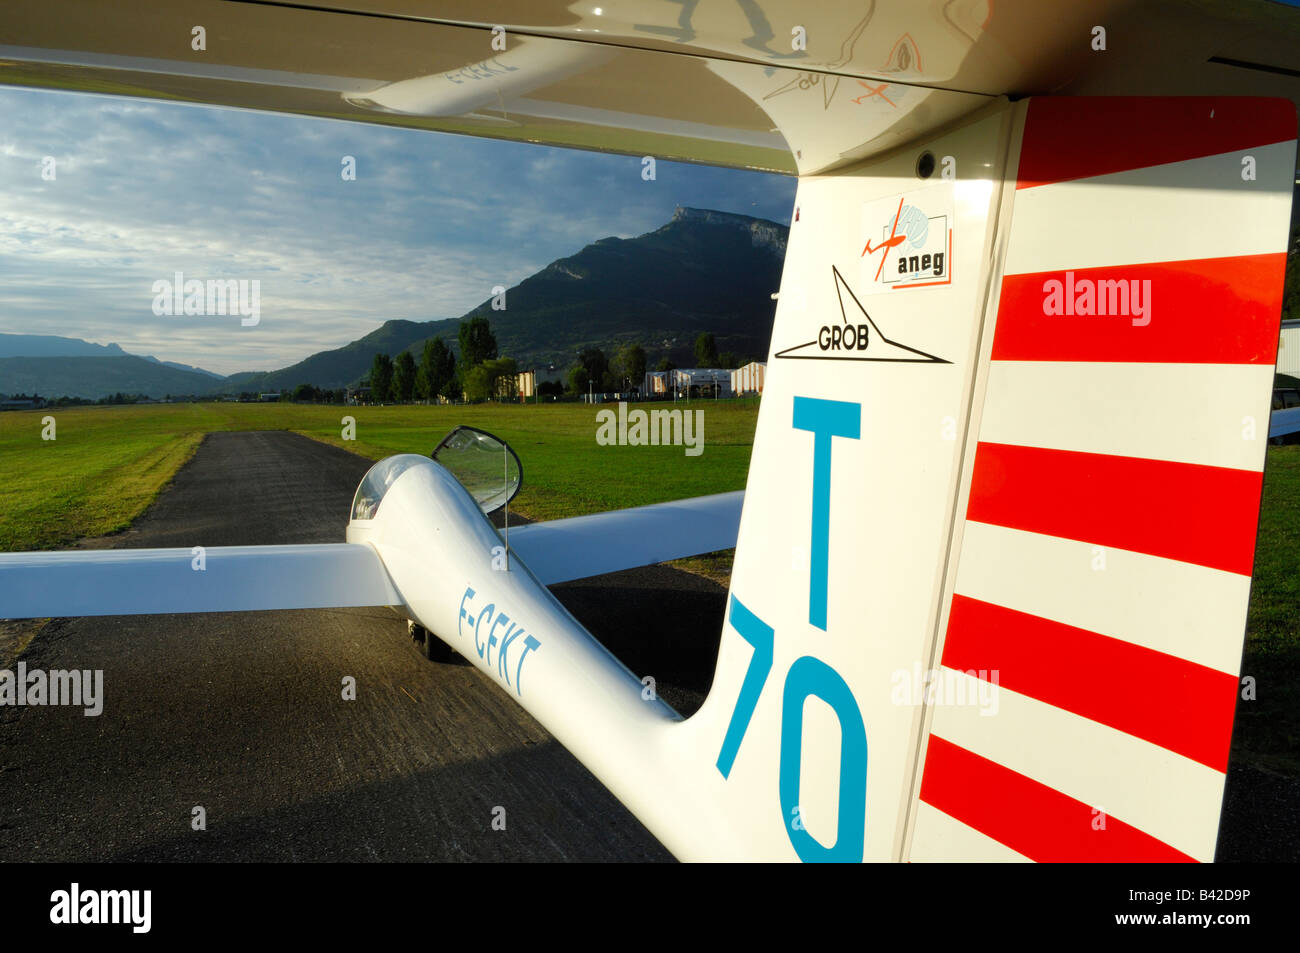 A glider Grob Twin Astir ready to taking off on a french airfield in French Savoy Alps - France - Stock Image